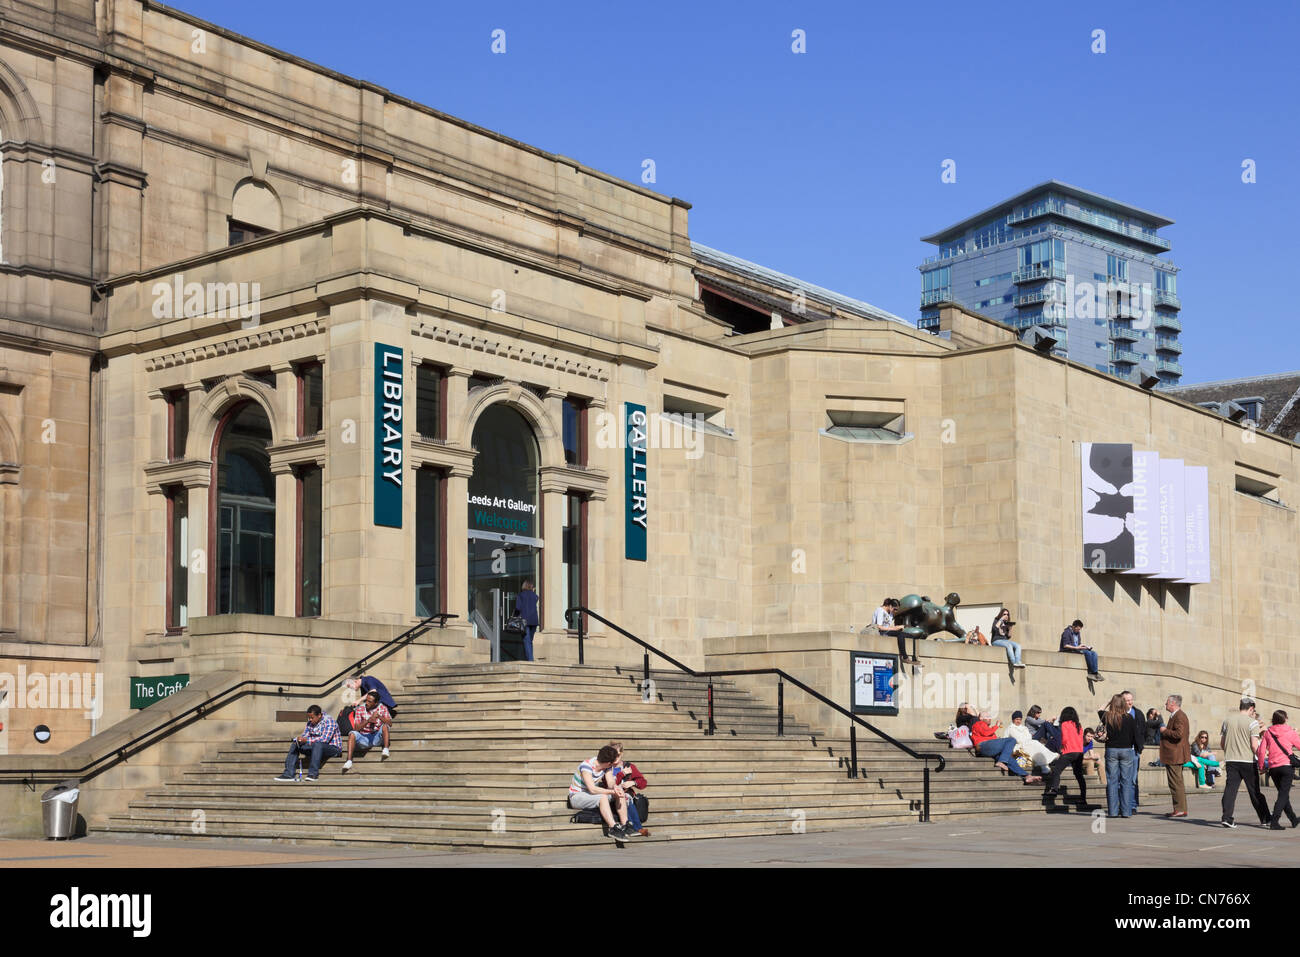 Scene with people on steps outside city public Central Library and Art Gallery in The Headrow Leeds West Yorkshire Stock Photo